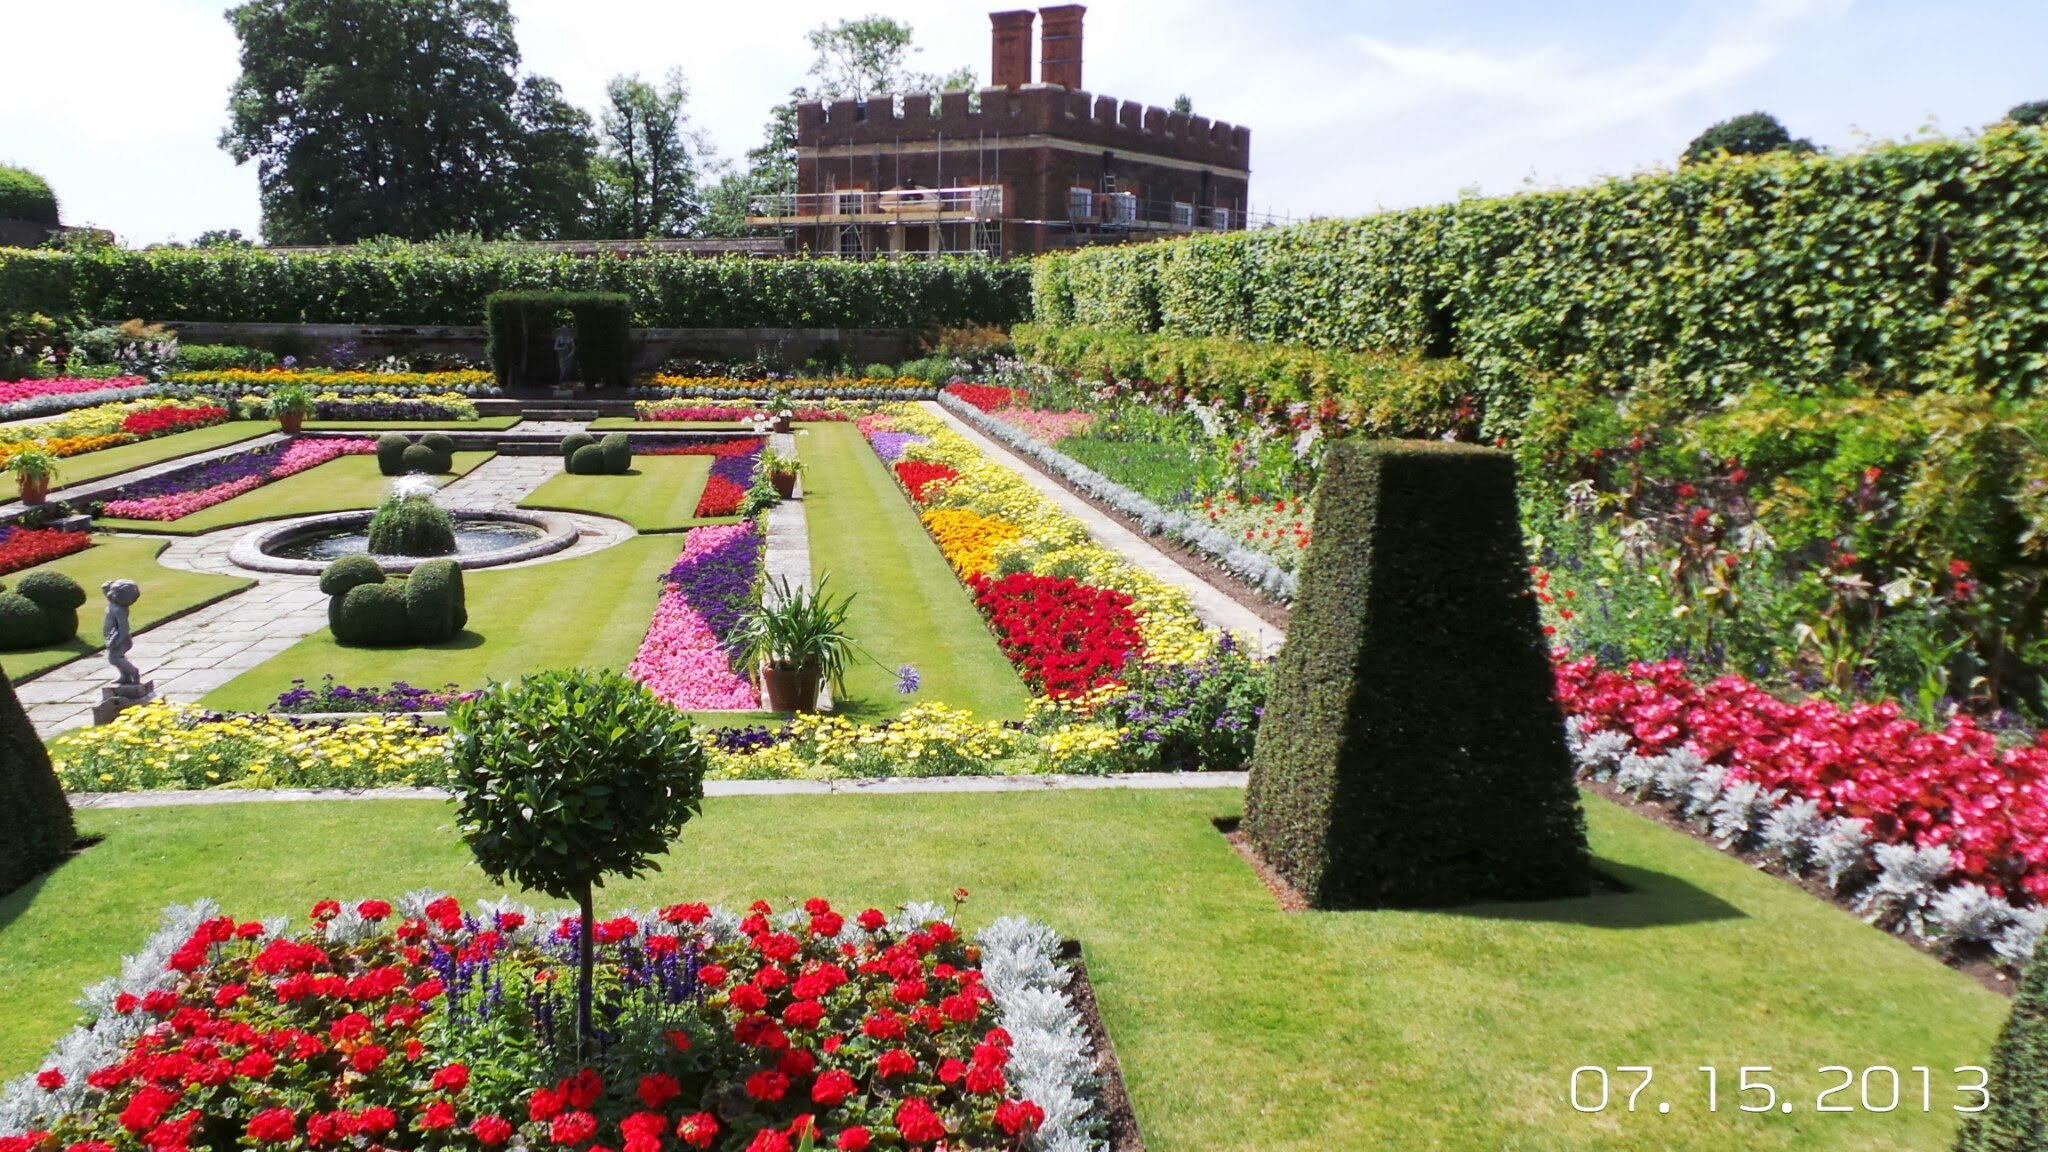 More Gardens at Hampton Court Palace